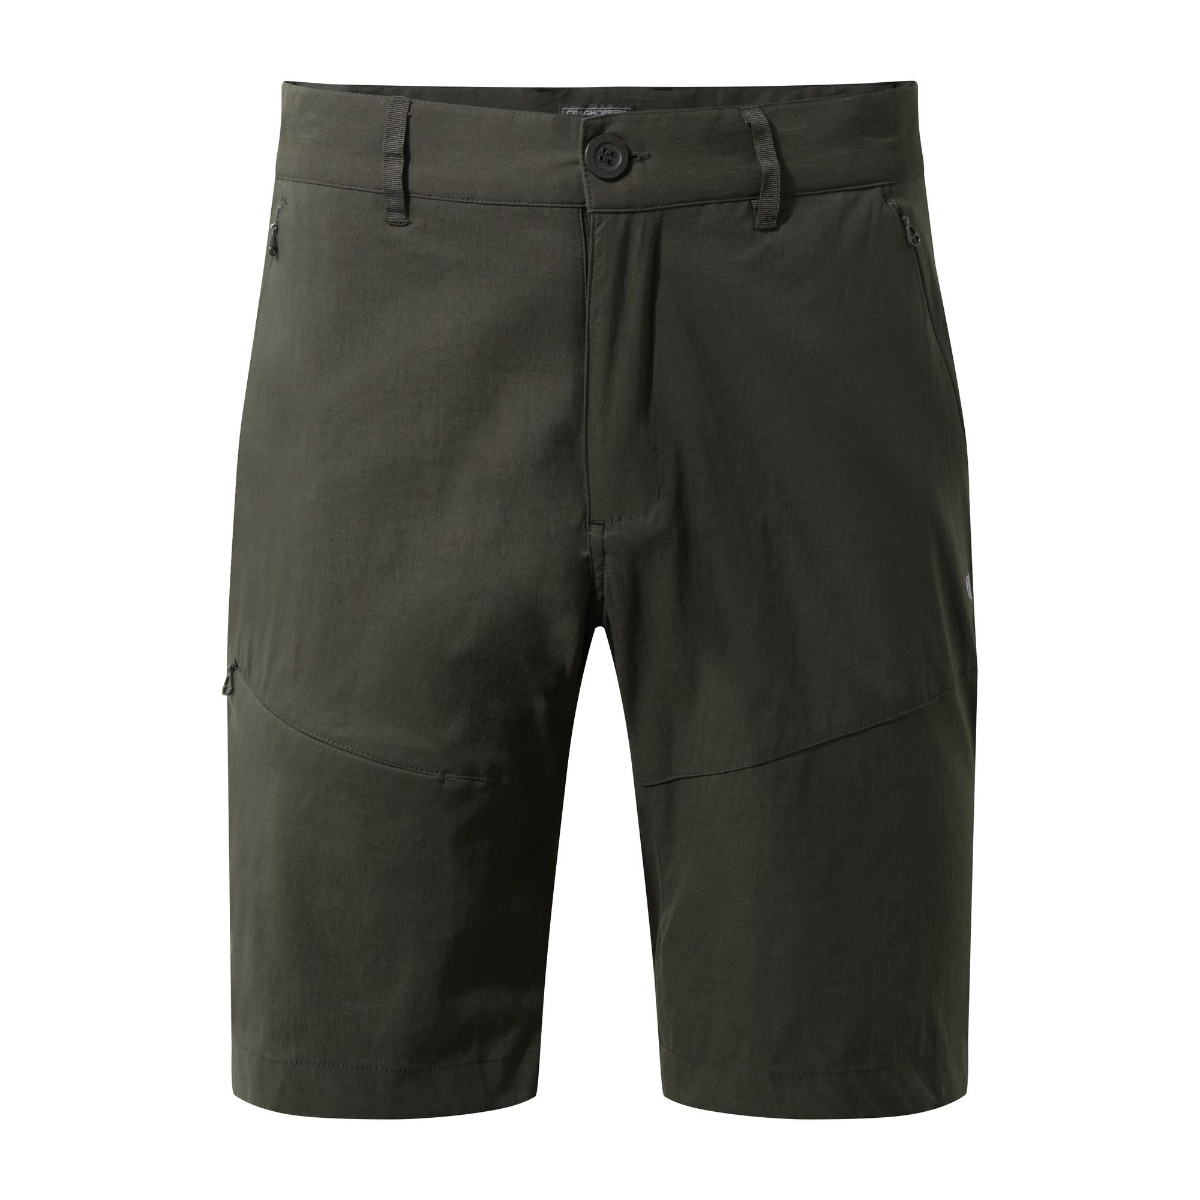 Craghoppers Mens Kiwi Pro Shorts-Dark Khaki